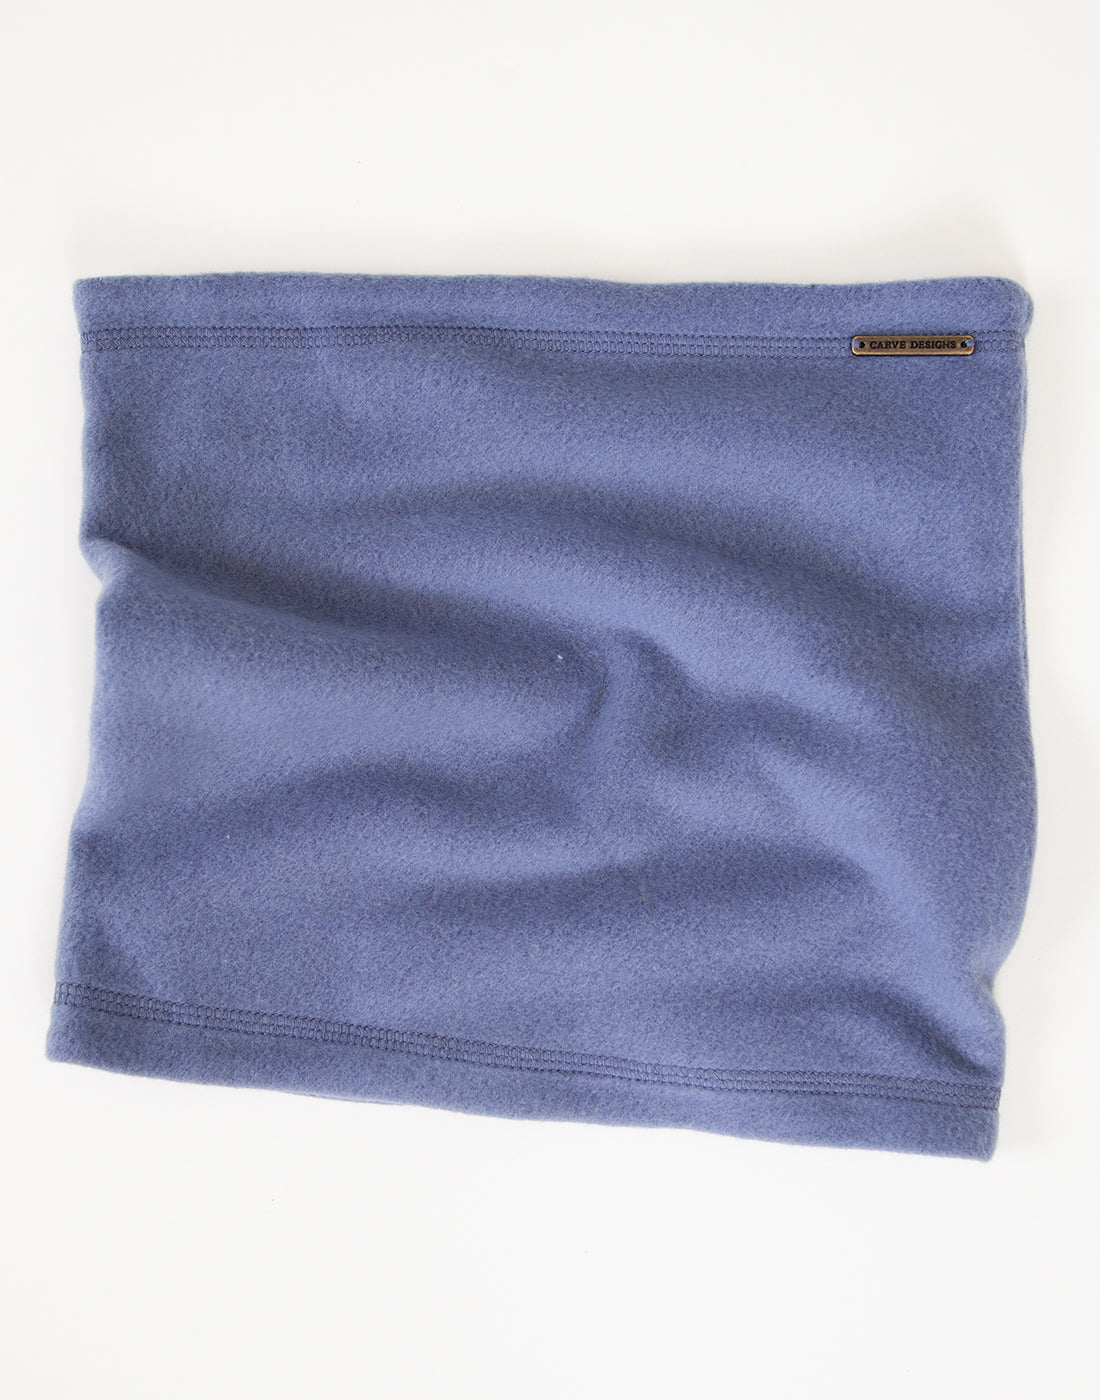 Rowayton Neck Warmer: Coastal